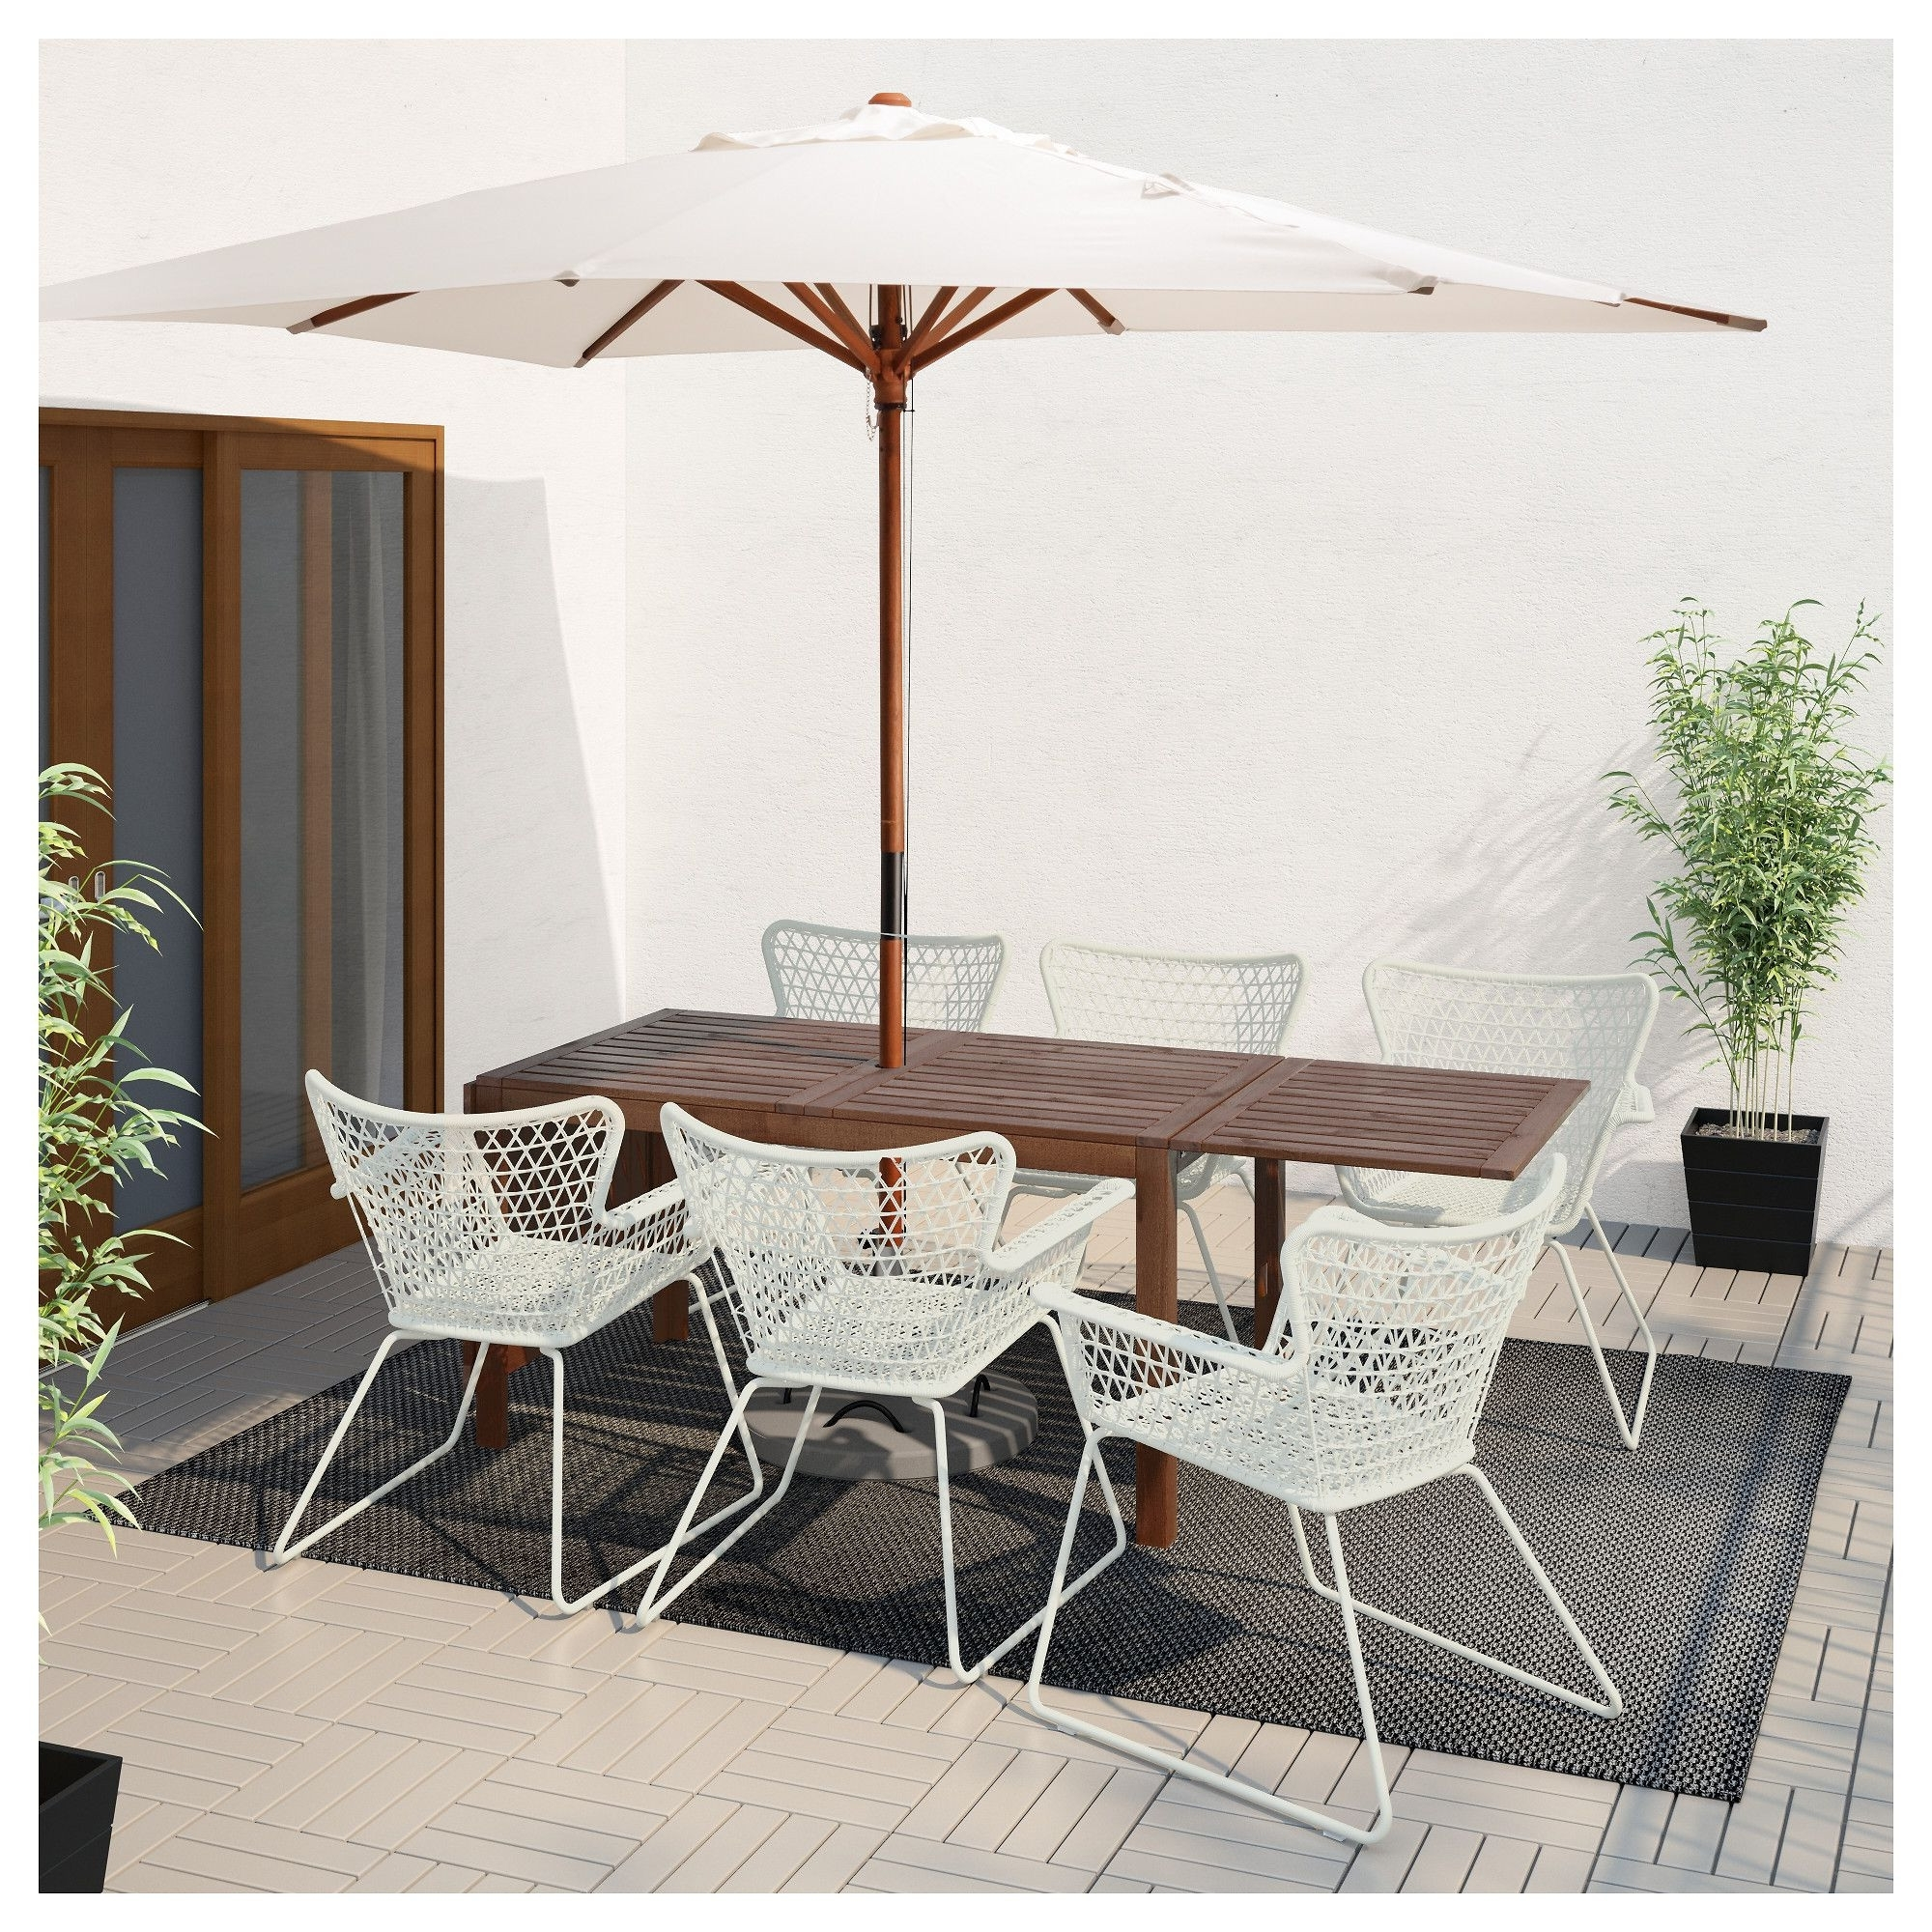 Commercial Outdoor Umbrellas Elegant Best For High Wind Areas This Intended For Fashionable Patio Umbrellas For High Wind Areas (Gallery 4 of 20)